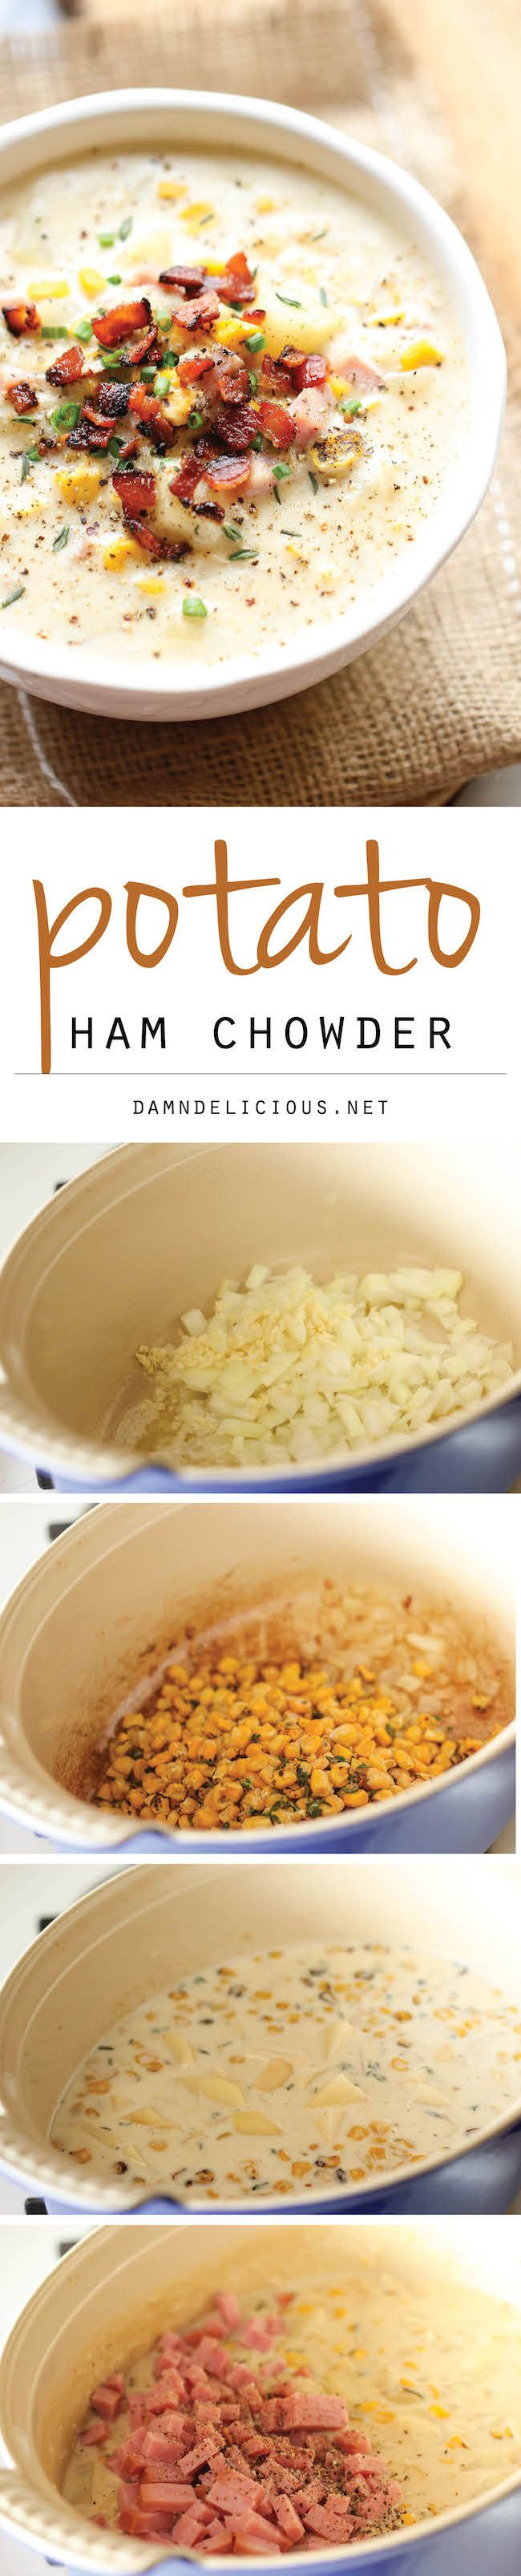 Potato Ham Chowder - A warm and filling chowder that's incredibly creamy and rich, perfect for those chilly winter nights!